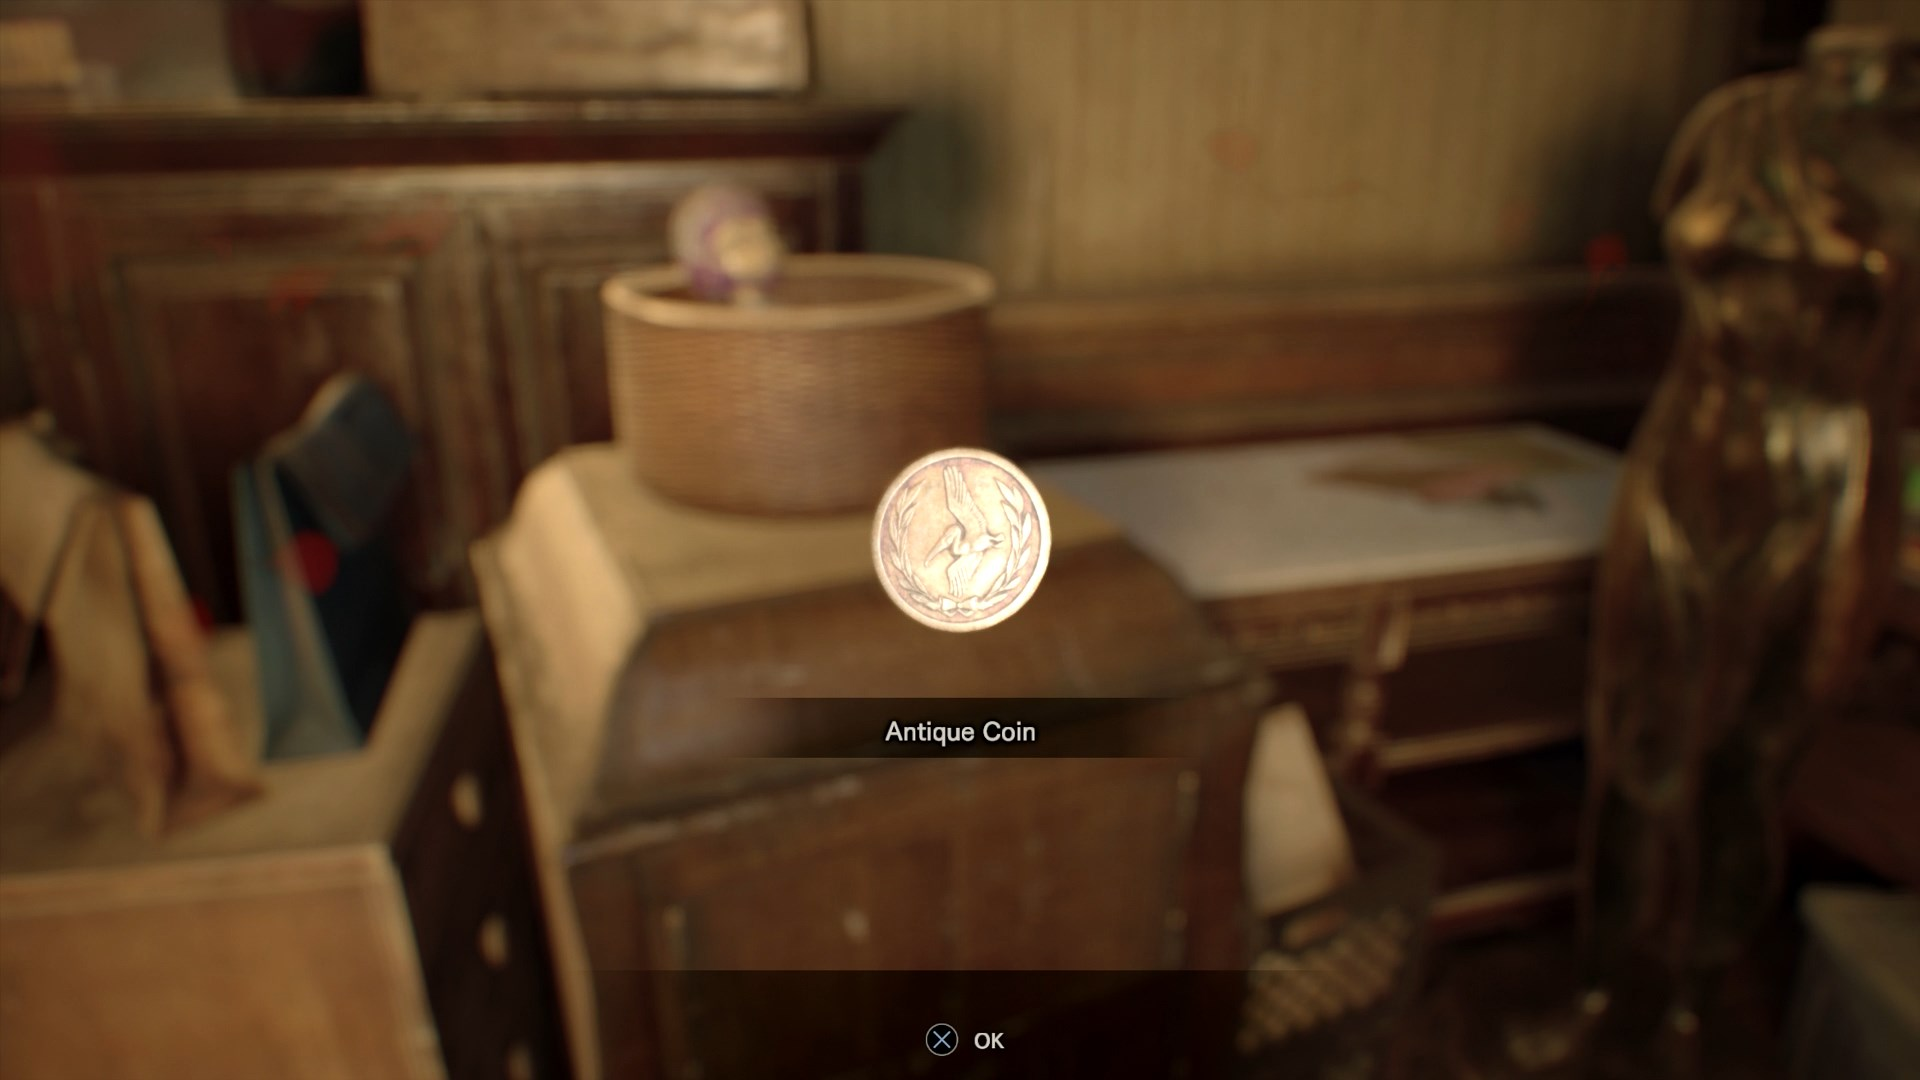 Resident Evil 7: How to Use Antique Coins and What They Do